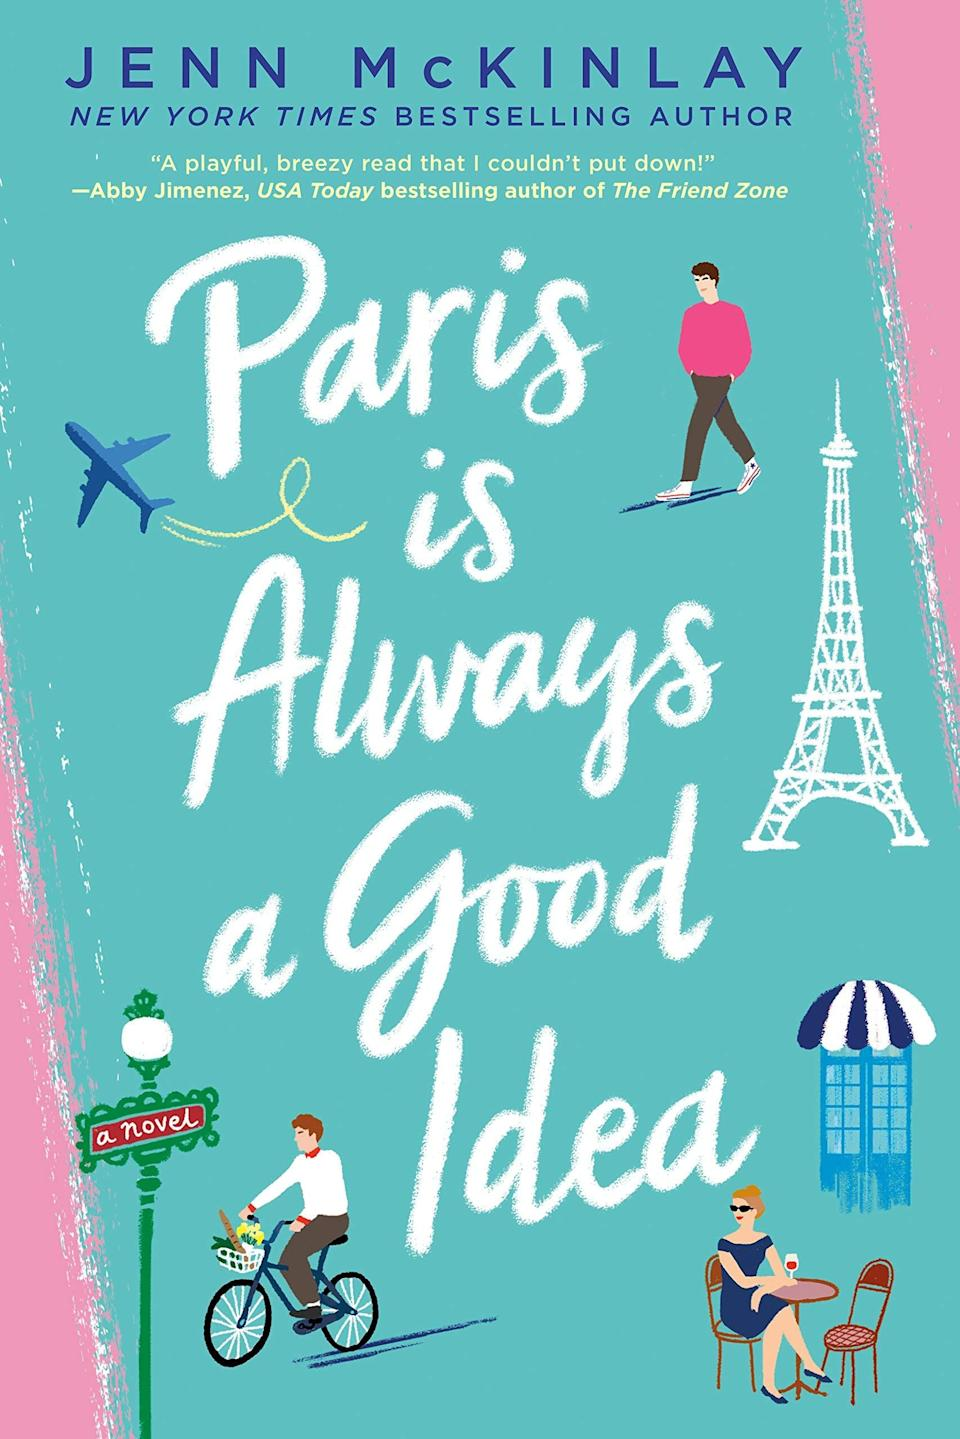 <p>Travel enthusiasts will catch some serious wanderlust from <span><strong>Paris Is Always a Good Idea</strong> by Jenn McKinlay</span> ($14), which finds the heroine hopping across Europe looking for love. After Chelsea Martin's dad suddenly announces that he's getting remarried, Chelsea realizes she hasn't been truly happy in years, and is hoping some romantic love in her life will change that. So she leaves behind her job and annoying rival coworker and embarks on an adventure through Ireland, France, and Italy hoping to reconnect with her old self - and her former flings.</p> <p>A book that takes place in Irish countryside, Paris, and Tuscany could not sound more appealing (especially right now), and this book delivers! I truly felt like I was going on an adventure, and even better, loved getting swept up in the swoon-worthy love story.</p>